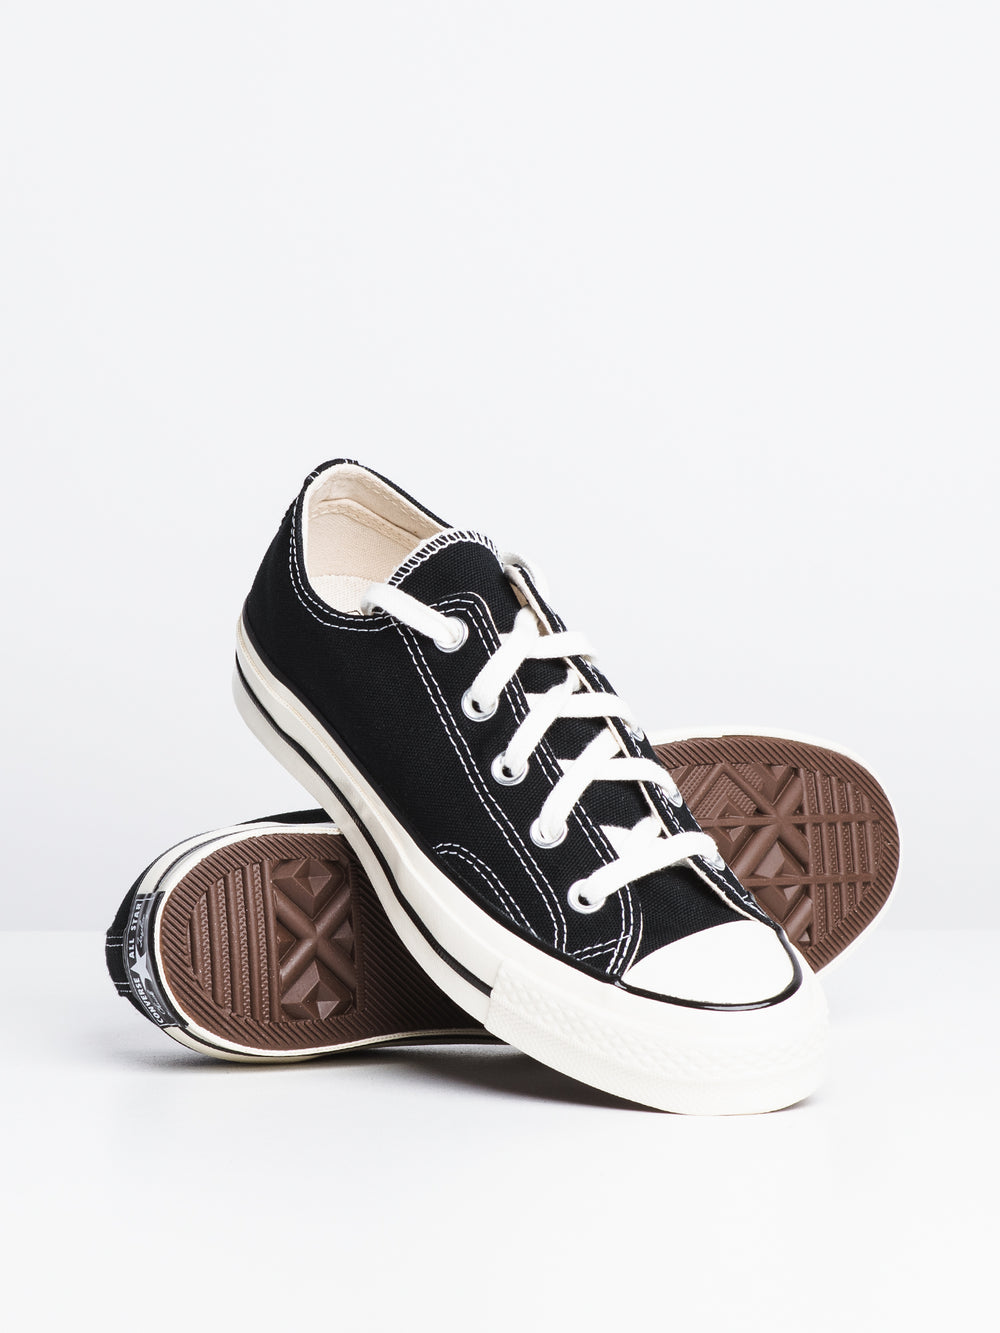 WOMENS CHUCK 70 VNTGE OX CANVAS SNEAKER